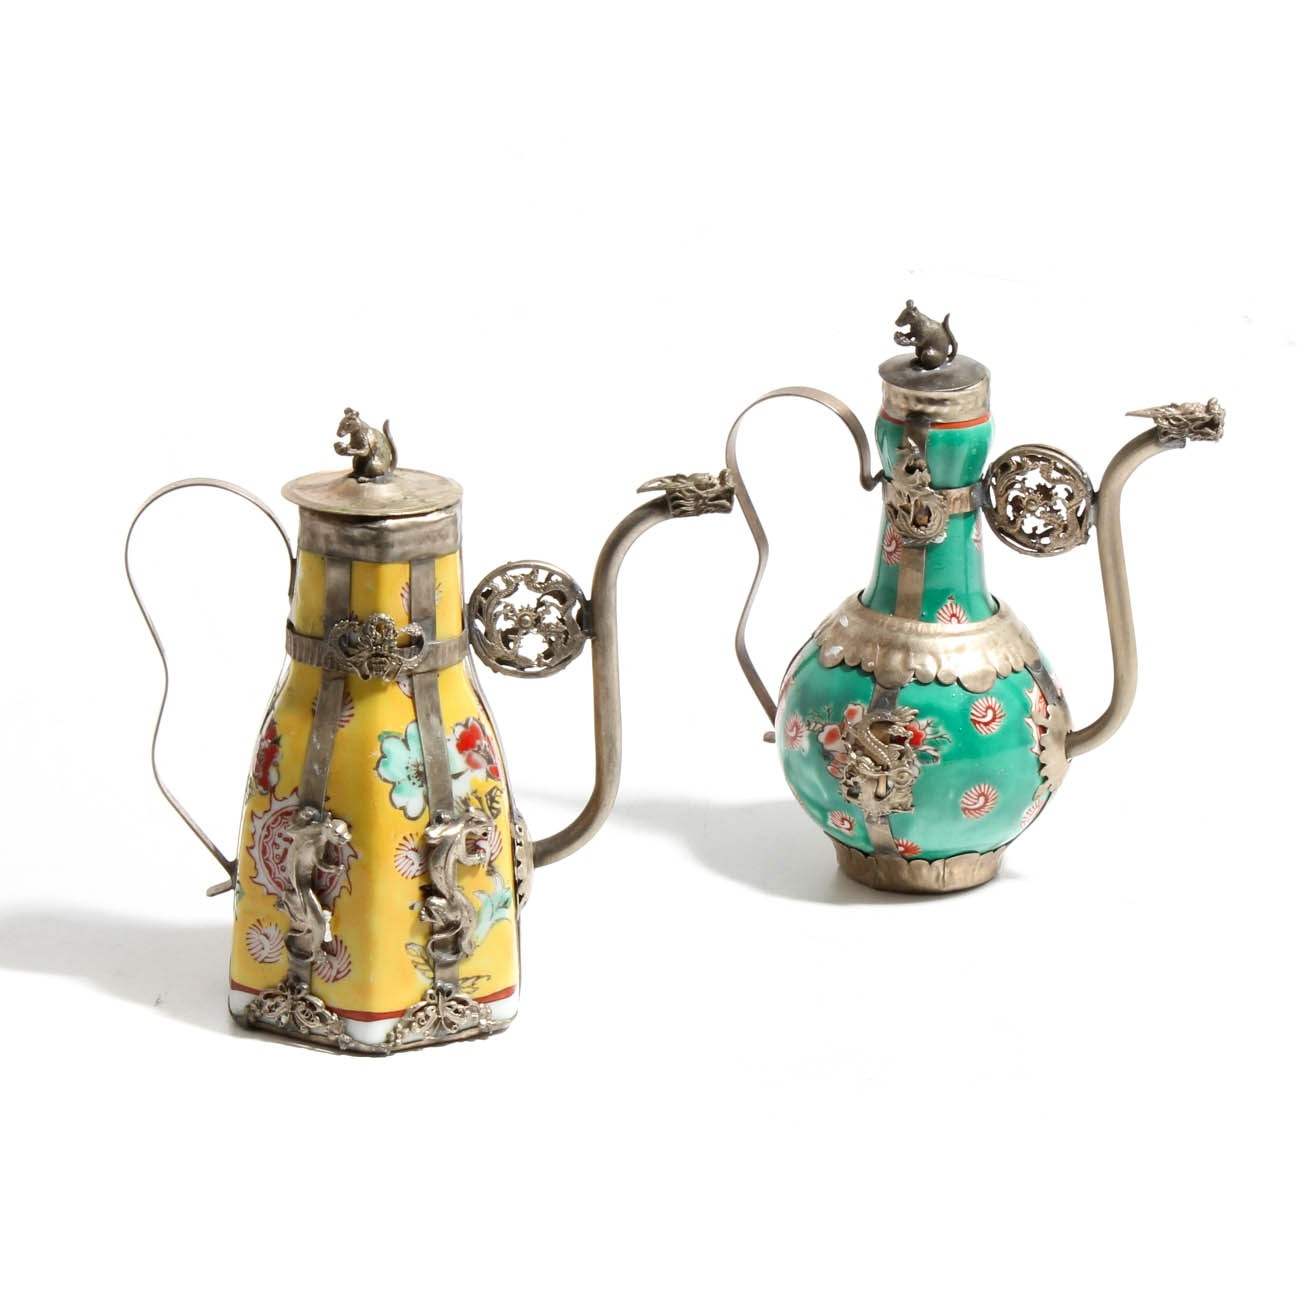 Tibetan Tea Pots in Porcelain and Silver Plated Metal